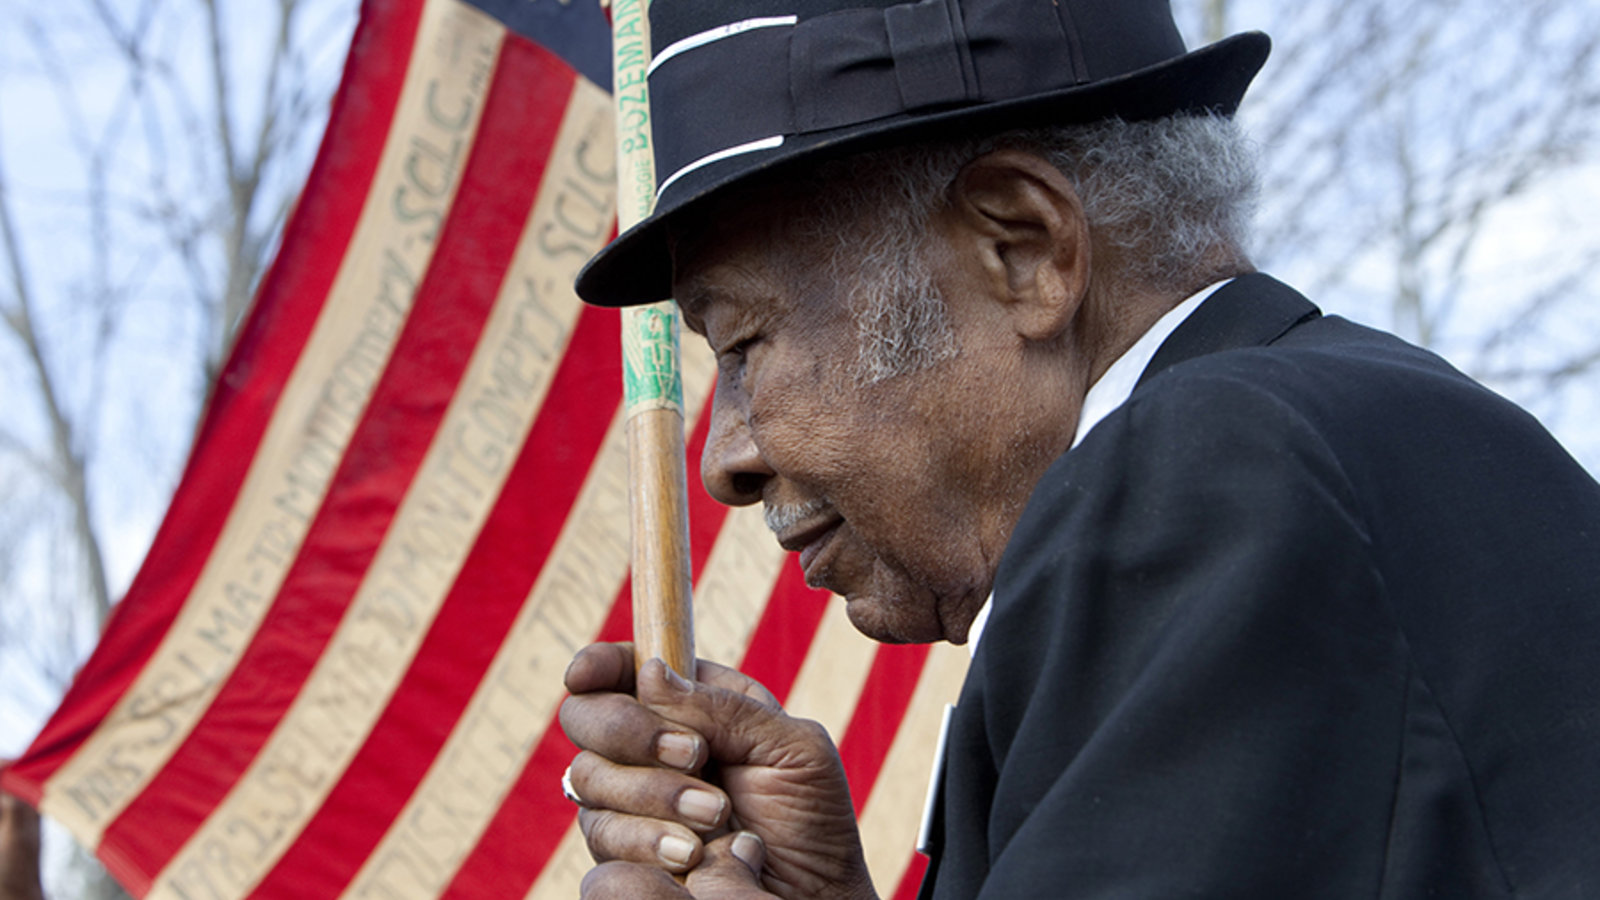 The Barber of Birmingham - Foot Soldier of the Civil Rights Movement